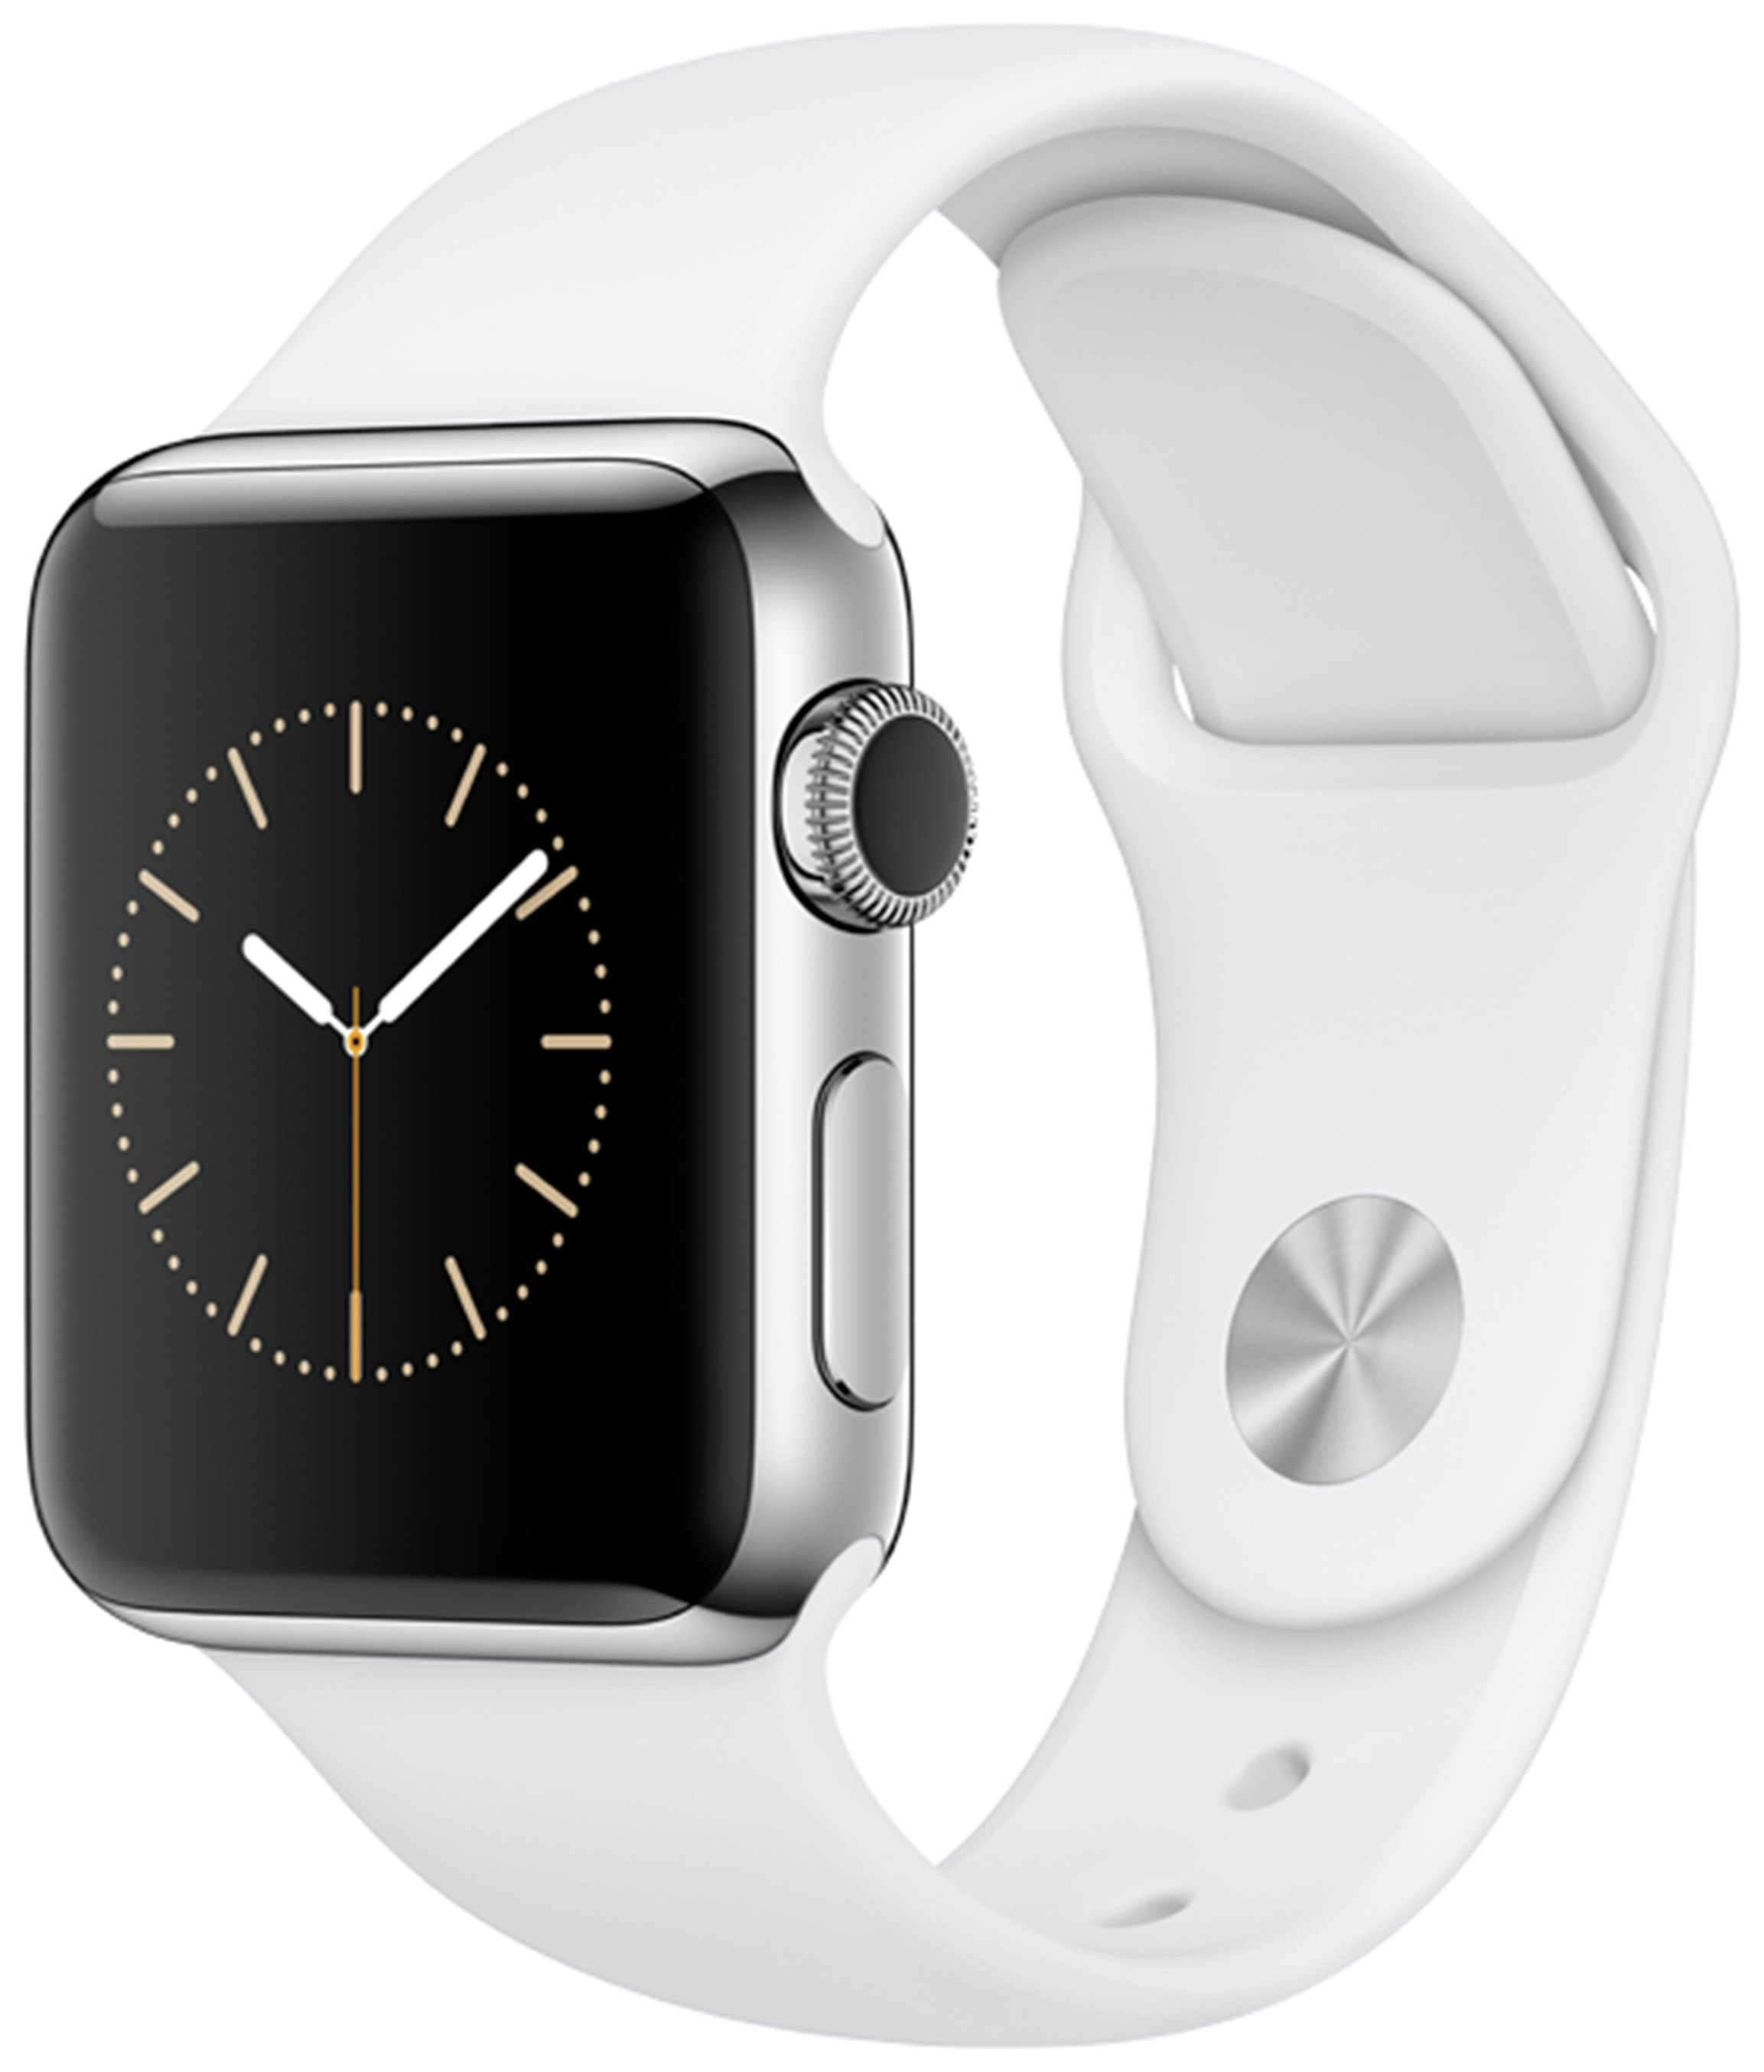 Order a Apple Watch S2 38mm Stainless Steel White Sport Band. at lowest prices on internet